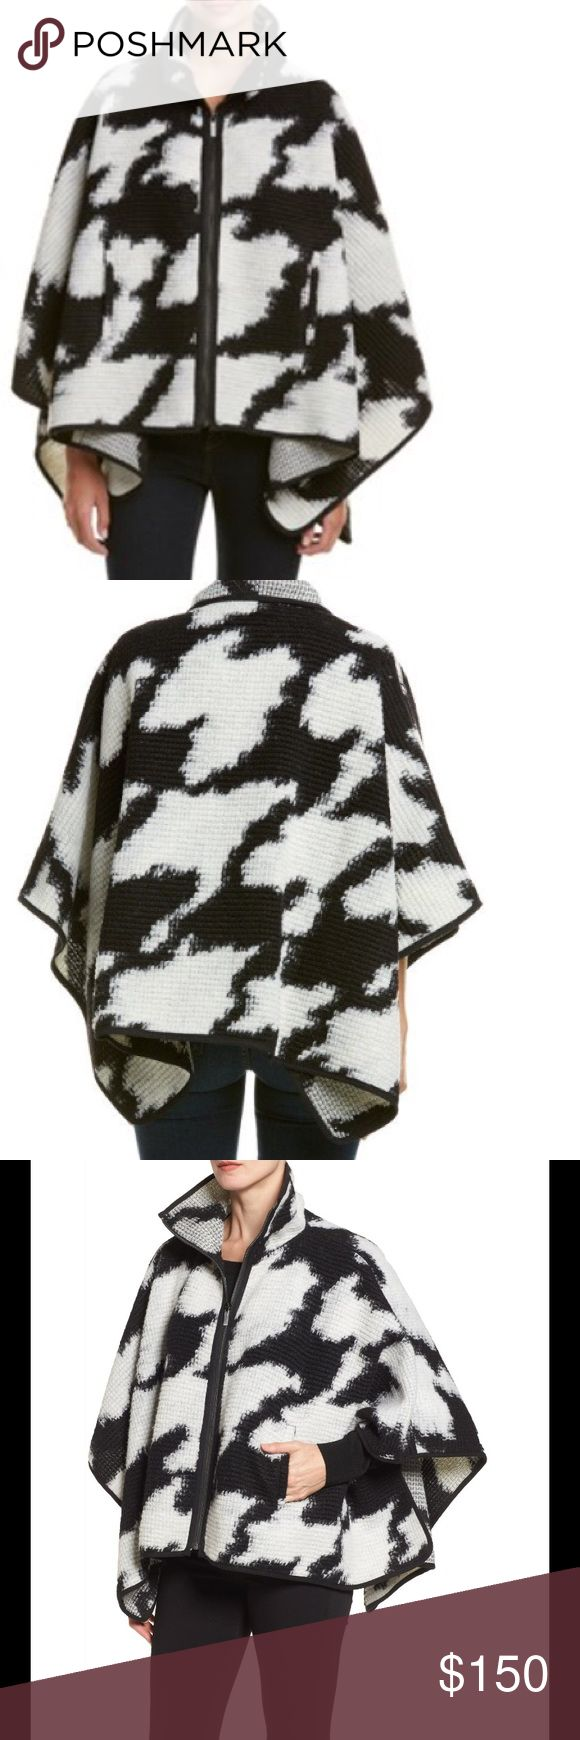 French Connection Women's Black and White Cape Beautiful Stylish French Connection Black and White Zip Front Houndstooth Poncho. Front Zip closure, Stand Collar, 51% Wool, 49% Polyester. New with tags. French Connection Jackets & Coats Capes